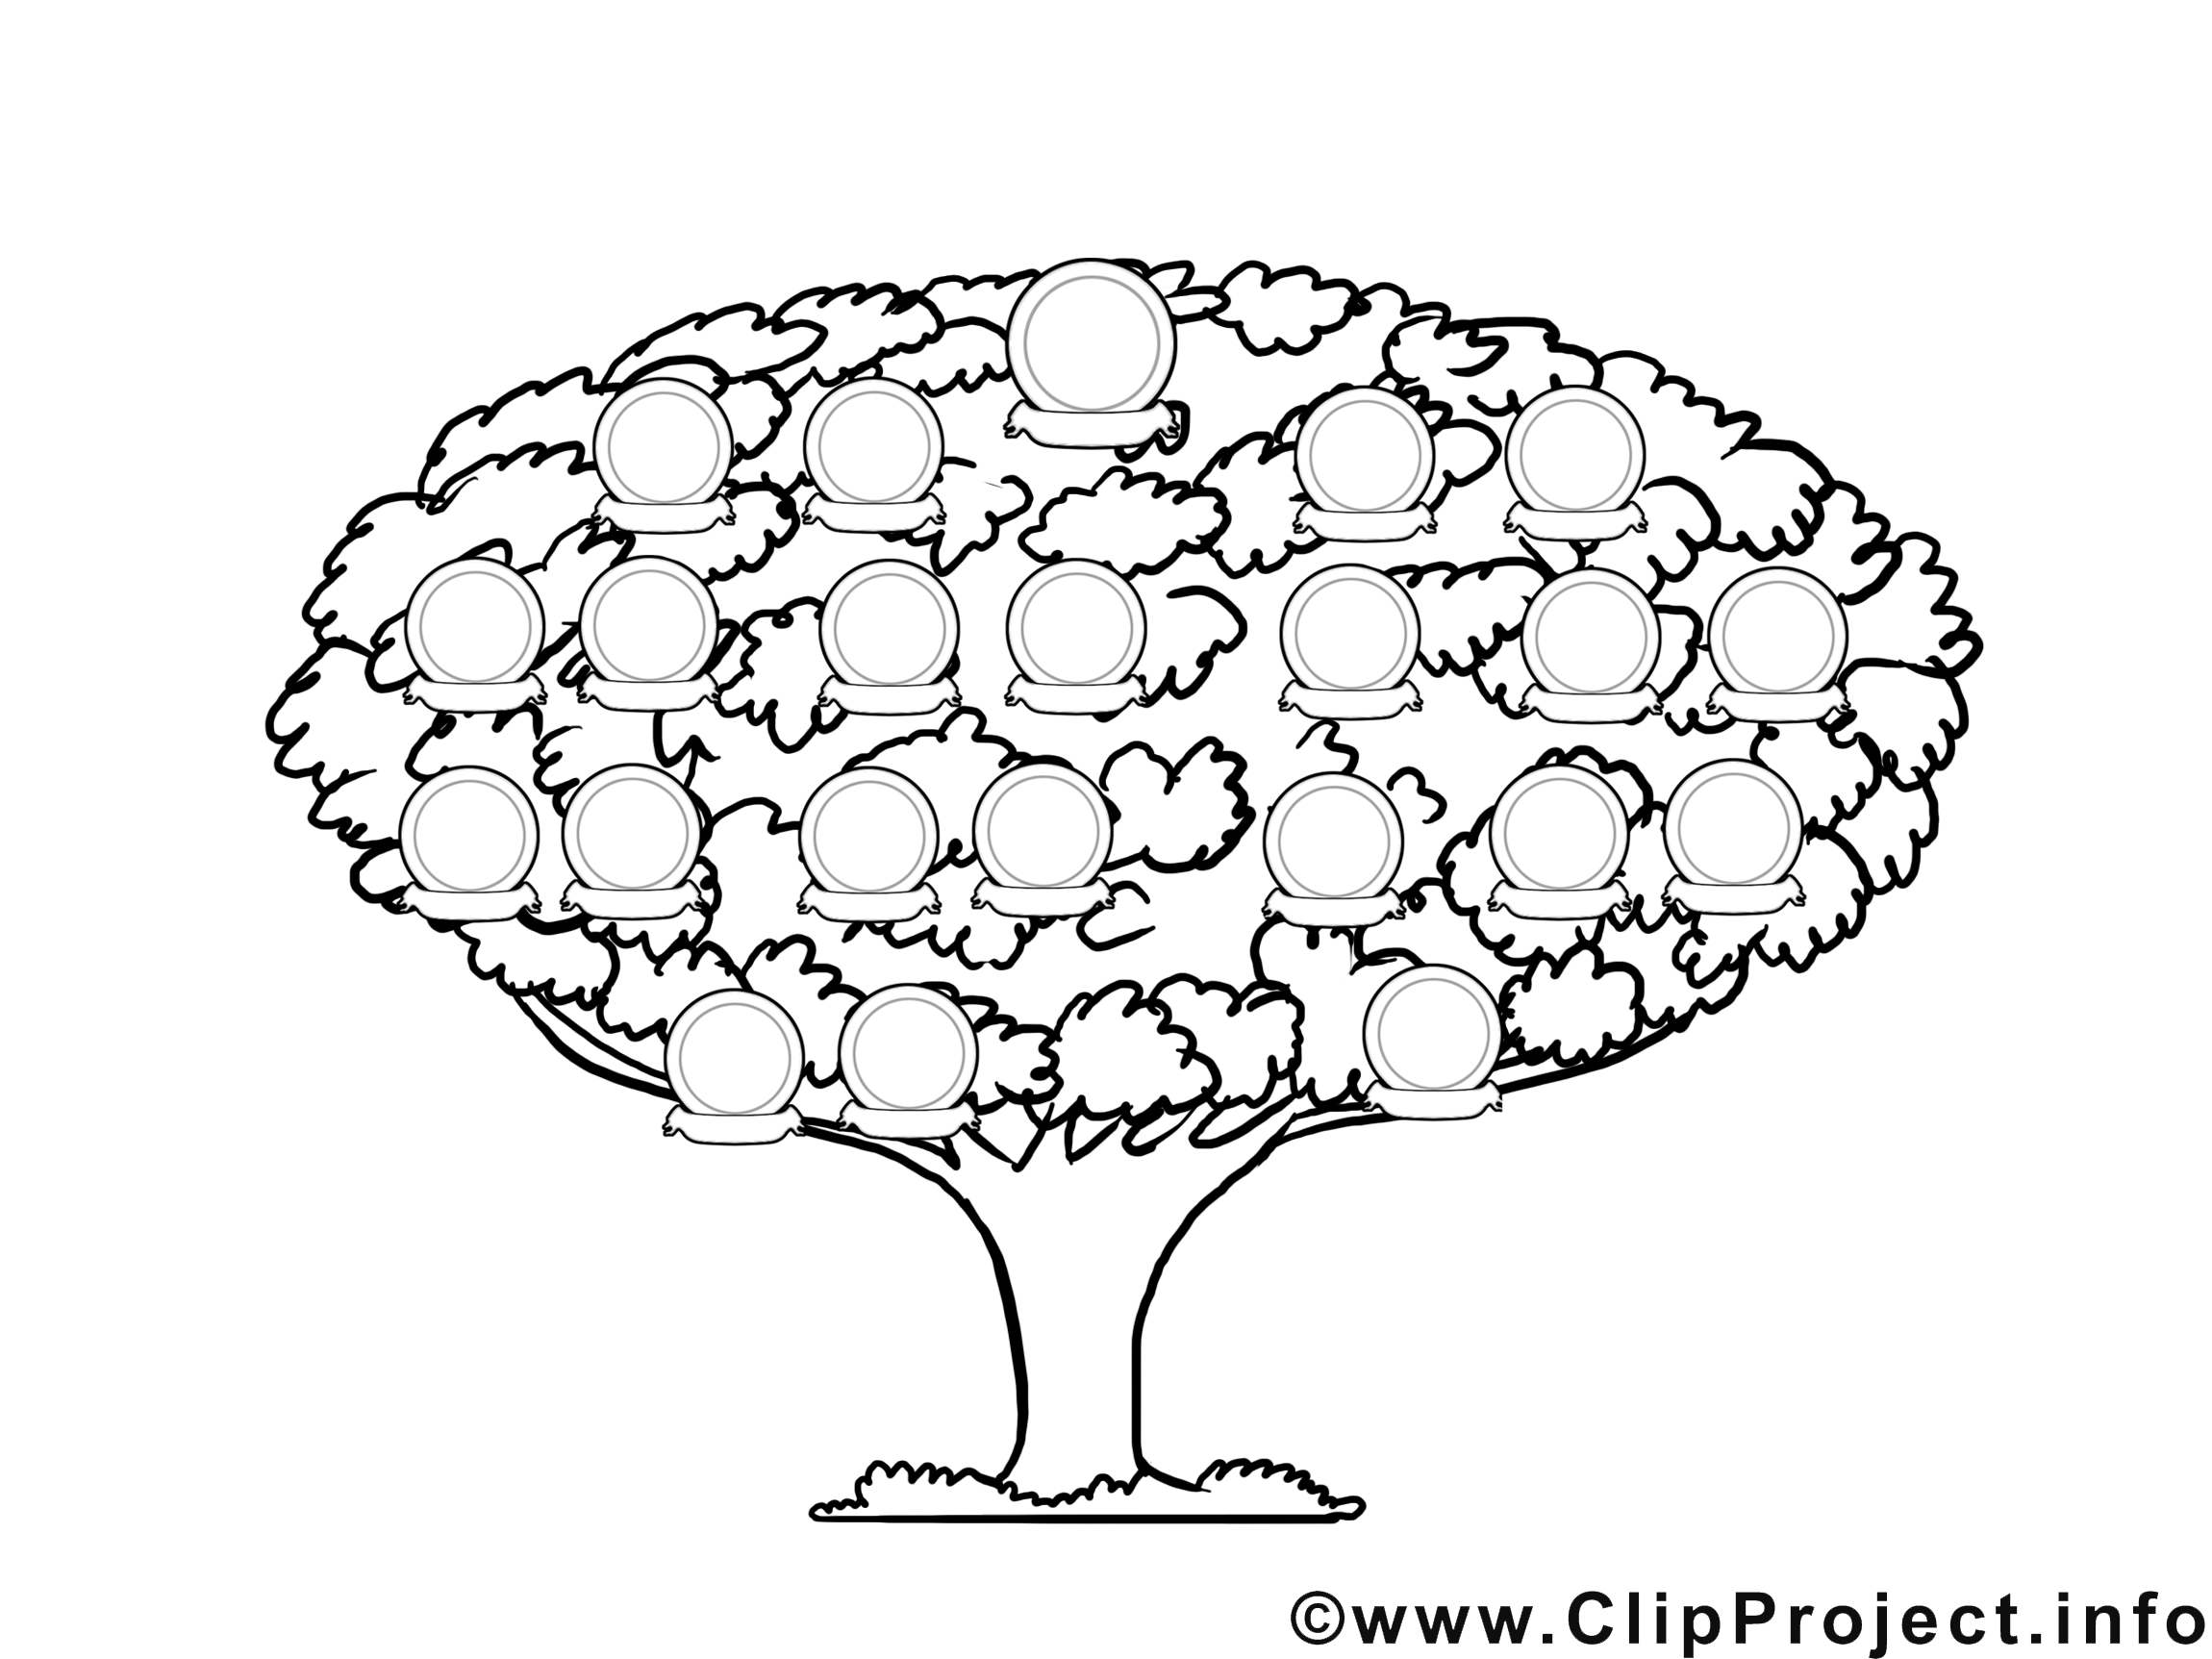 Coloriage Arbre Genealogique.Arbre Genealogique Dessin Divers A Colorier Coloriages A